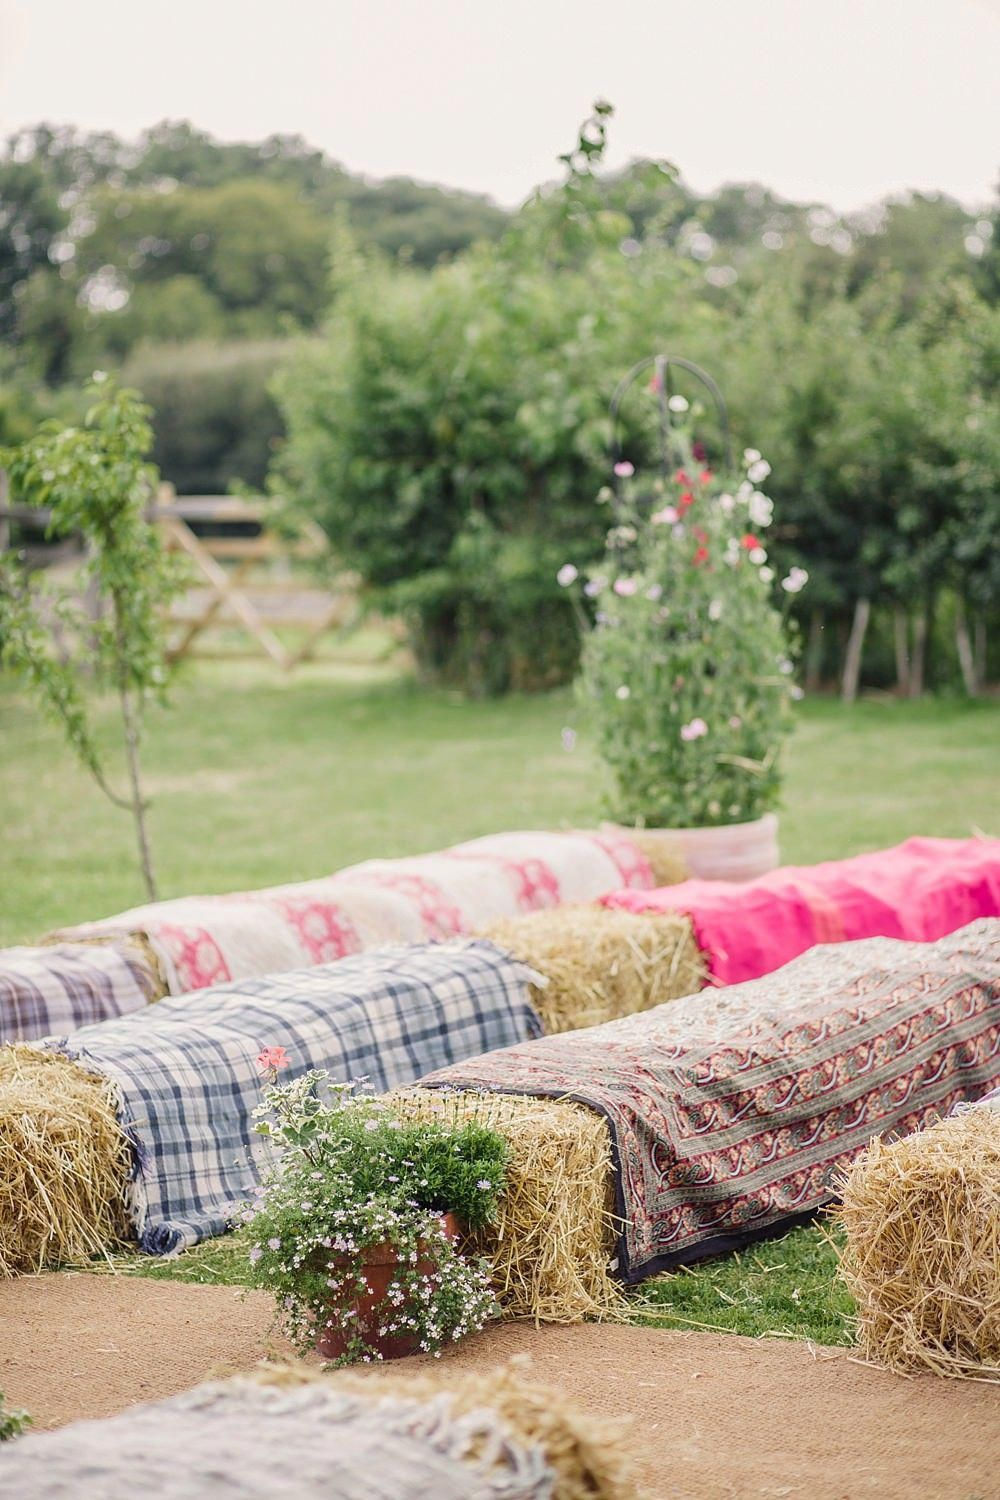 Hay Bale Seats for an Outdoor Wedding Ceremony Image by